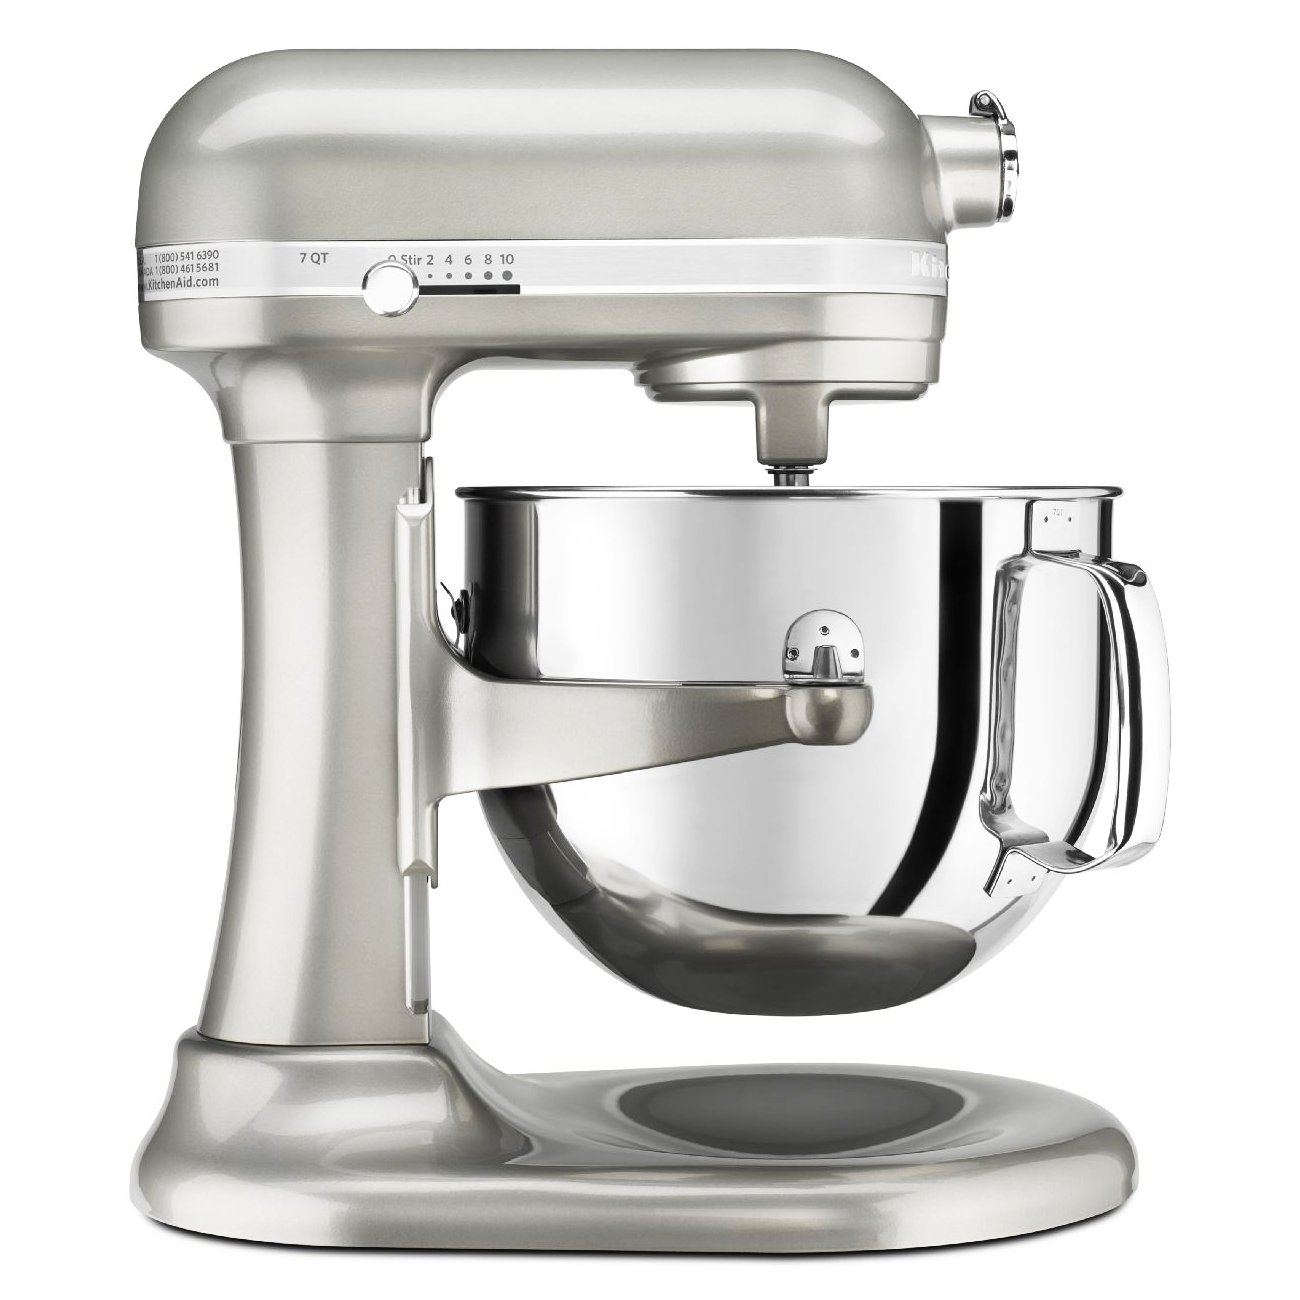 Amazon.com: KitchenAid KSM7586PSR 7-Quart Pro Line Stand Mixer Sugar ...